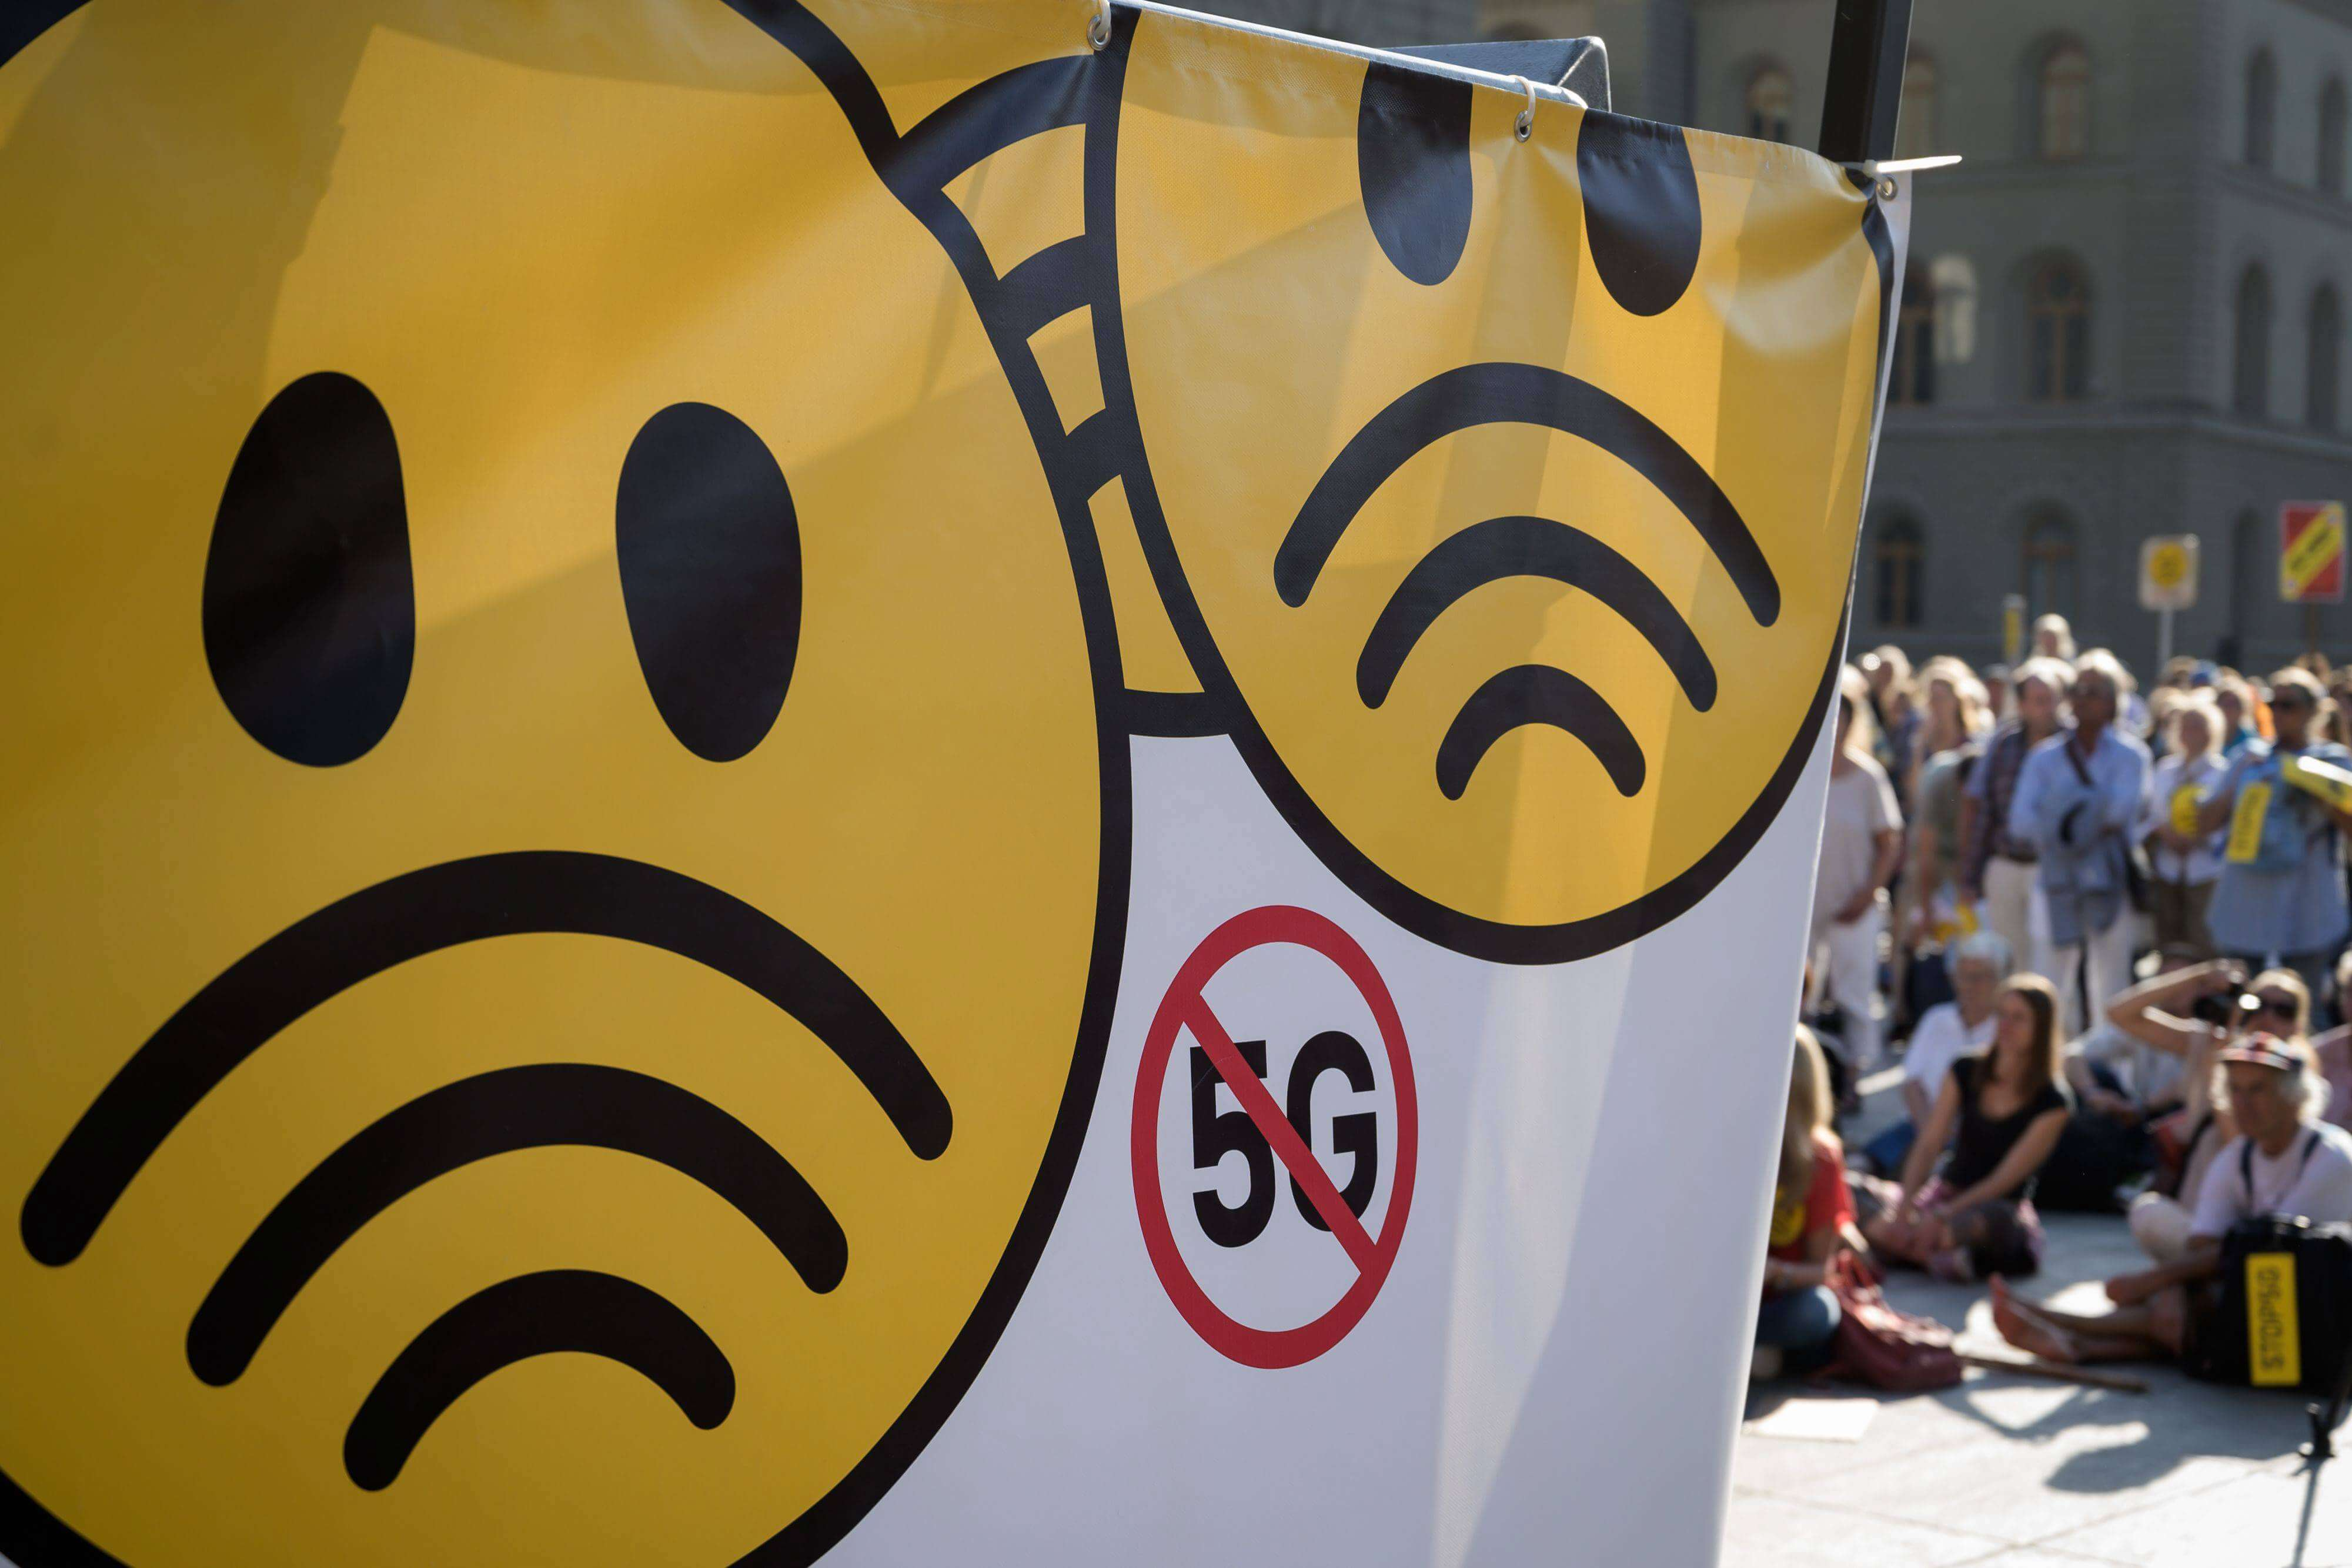 Thousands protest in Switzerland against countrywide roll-out of 5G over health fears